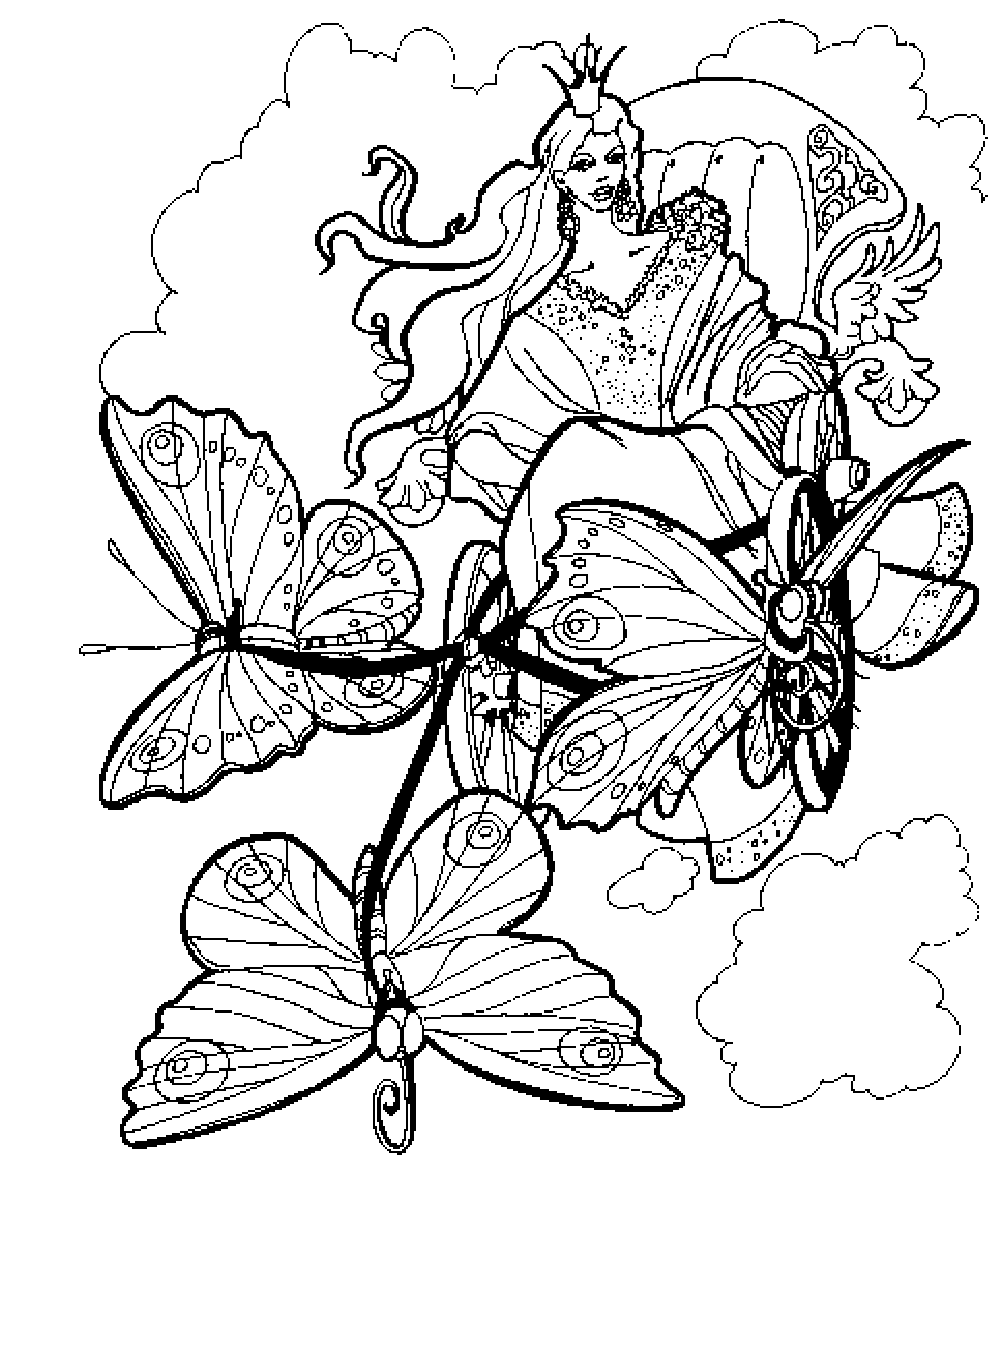 free printable advanced coloring pages for adults - Fantasy Coloring Pages Adults